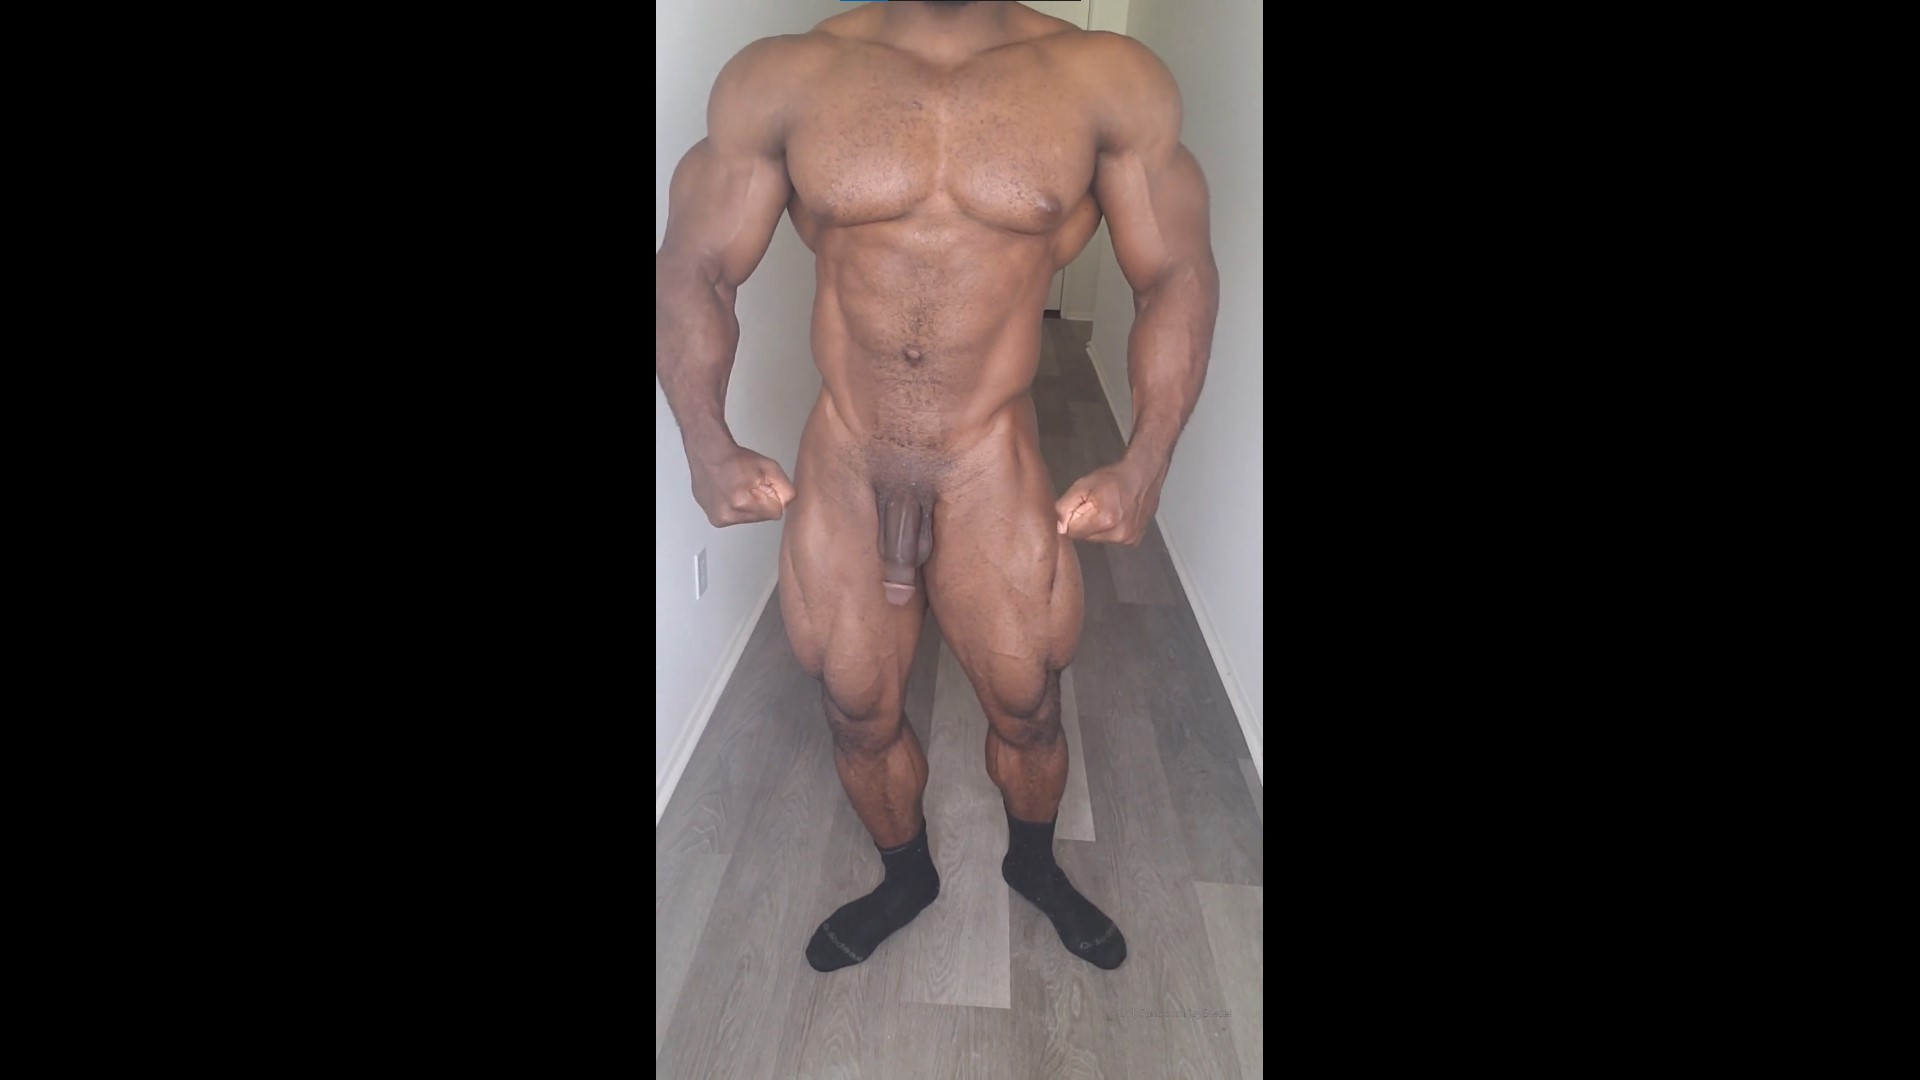 Showing off my muscles and big black cock - jaydaddydickdiesel